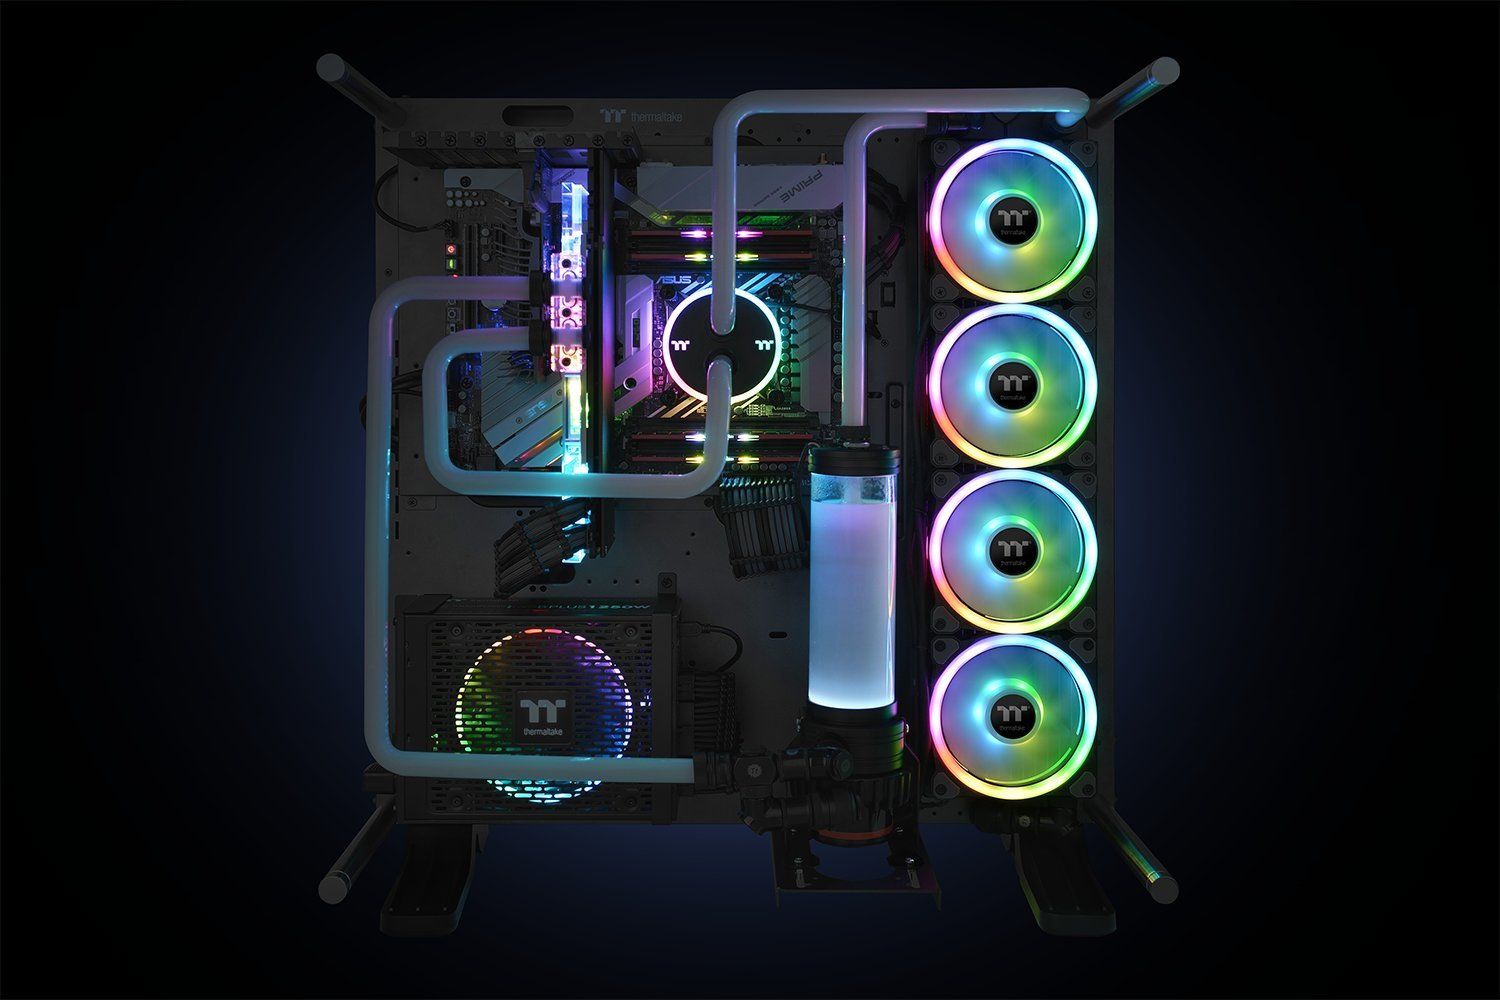 Thermaltake Riing Trio 12 RGB TT Premium Edition 120mm Software Enabled 30 Addressable LED 9 Blades Case/Radiator Fan - 3 Pack - CL-F072-PL12SW-A by Thermaltake (Image #8)